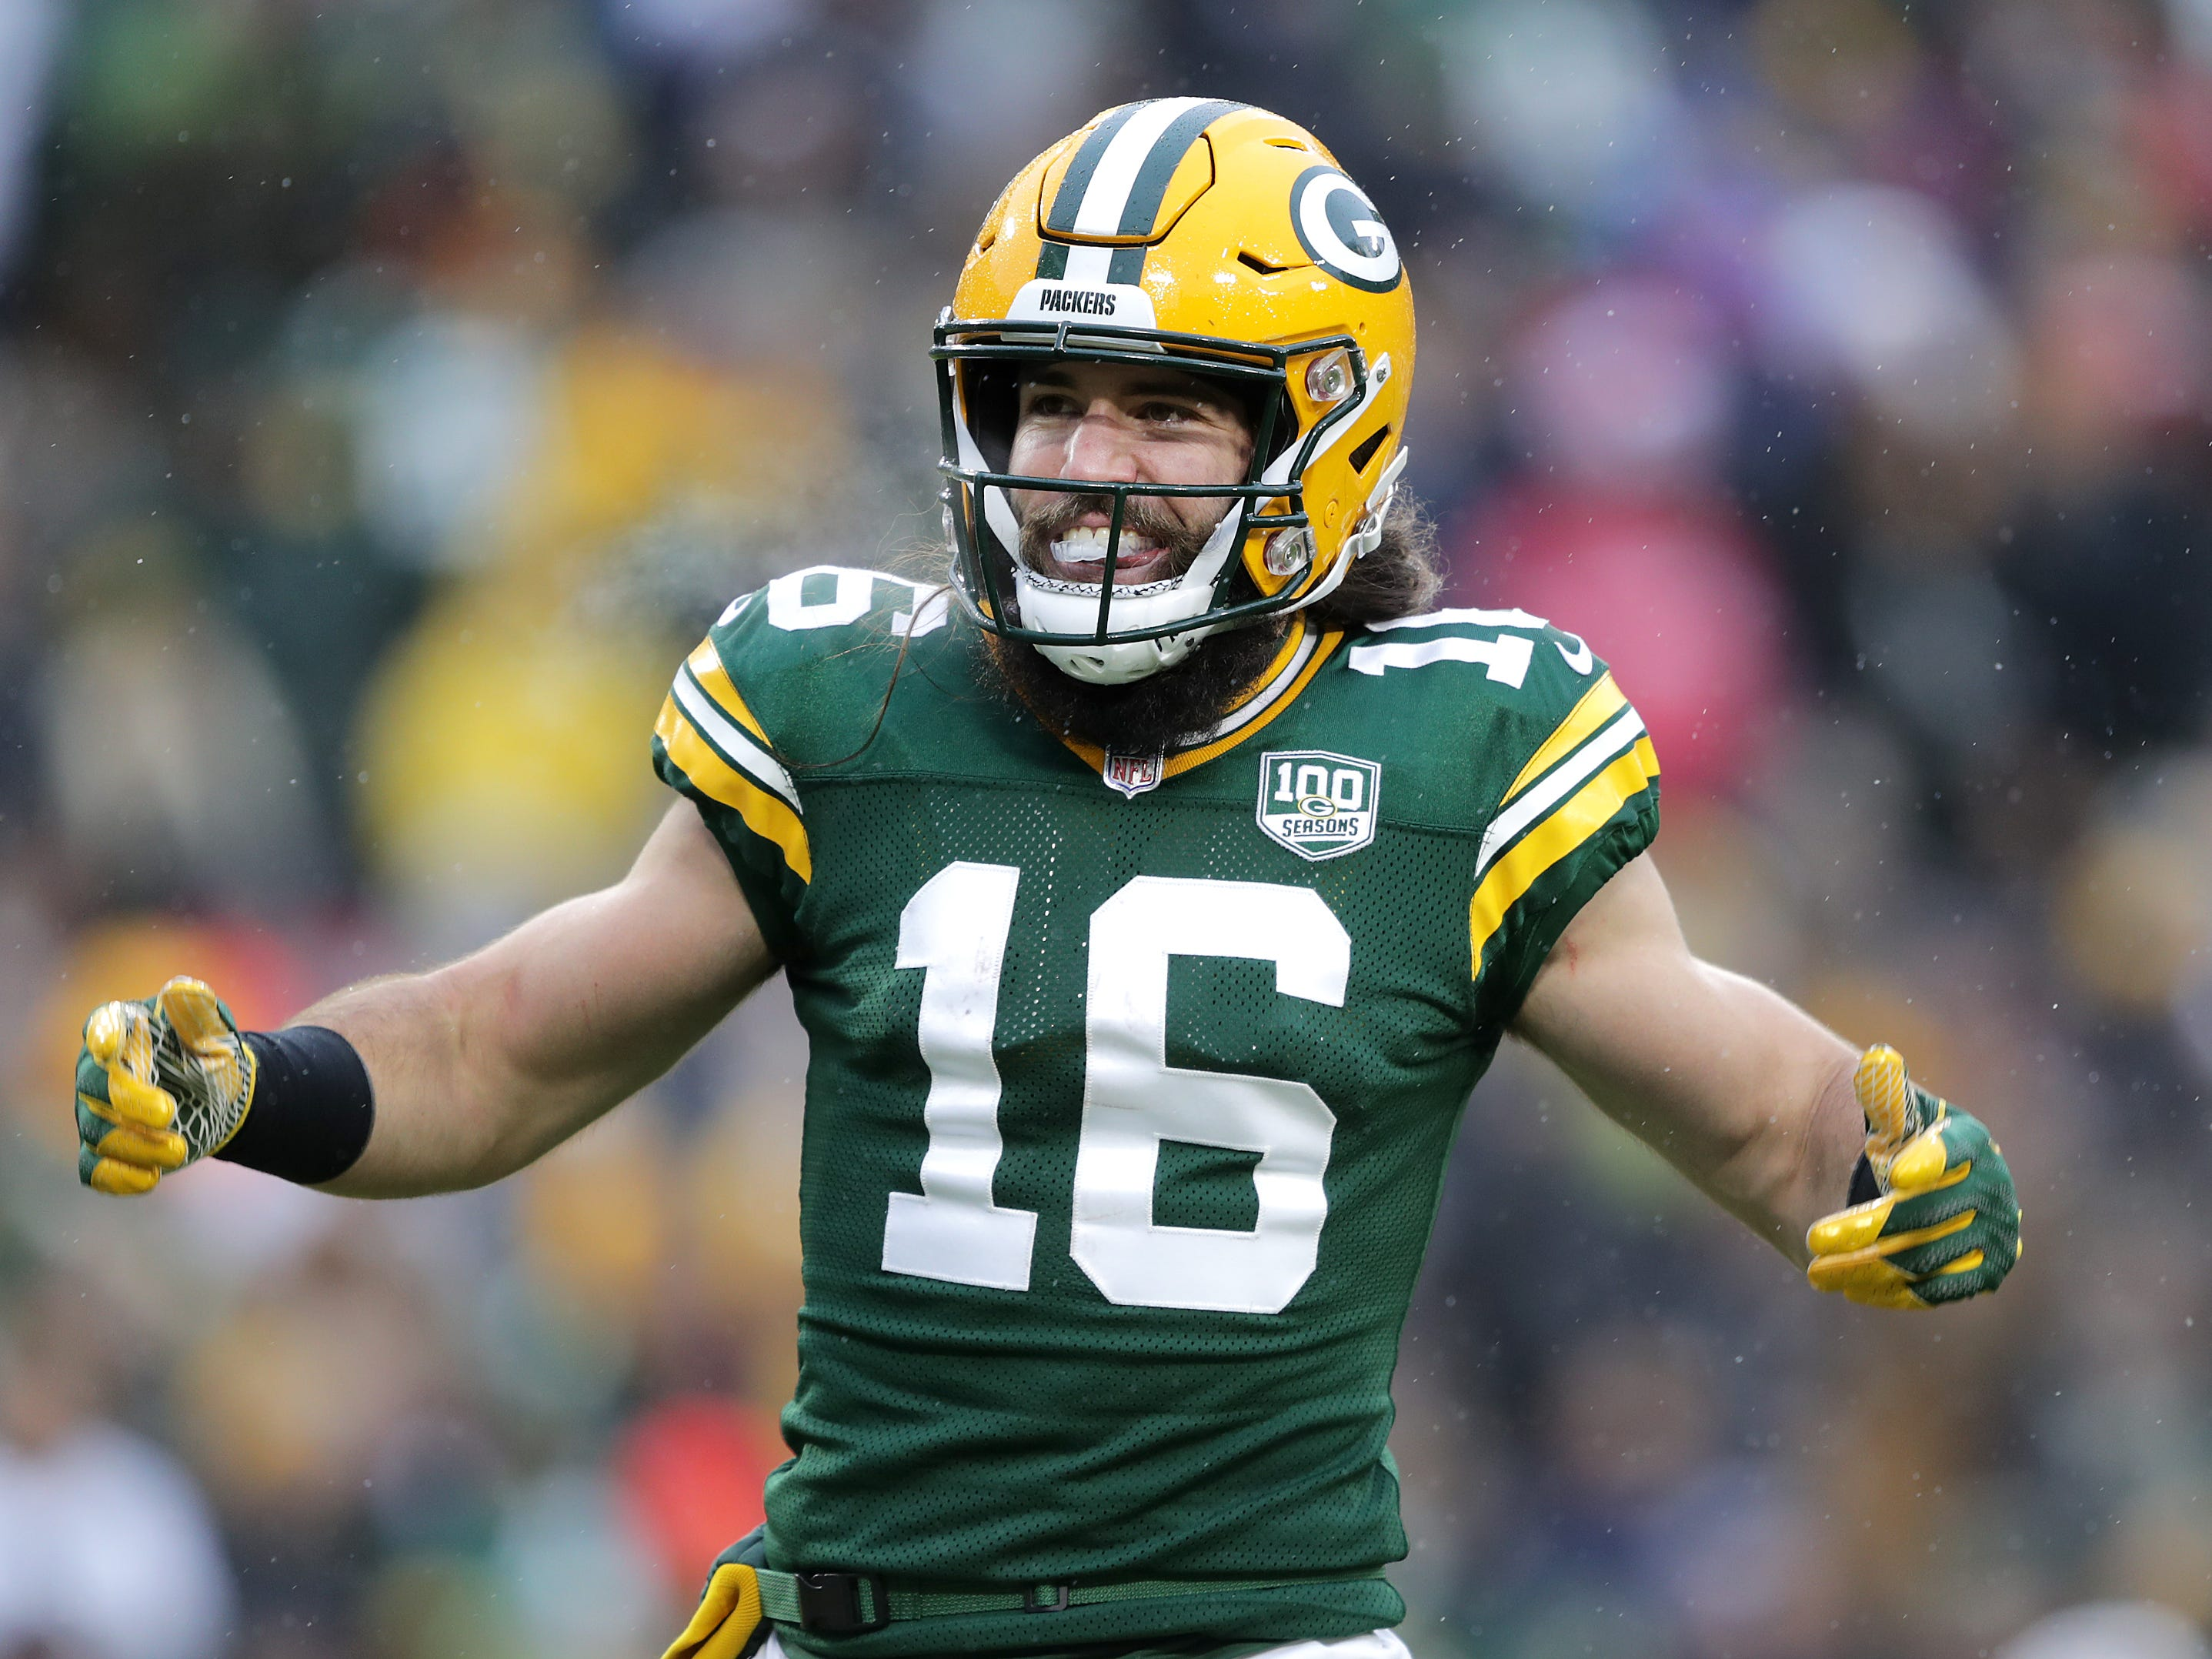 Green Bay Packers wide receiver Jake Kumerow against the Arizona Cardinals during their football game on Sunday, December 2, 2018, at Lambeau Field in Green Bay, Wis. Wm. Glasheen/USA TODAY NETWORK-Wisconsin.